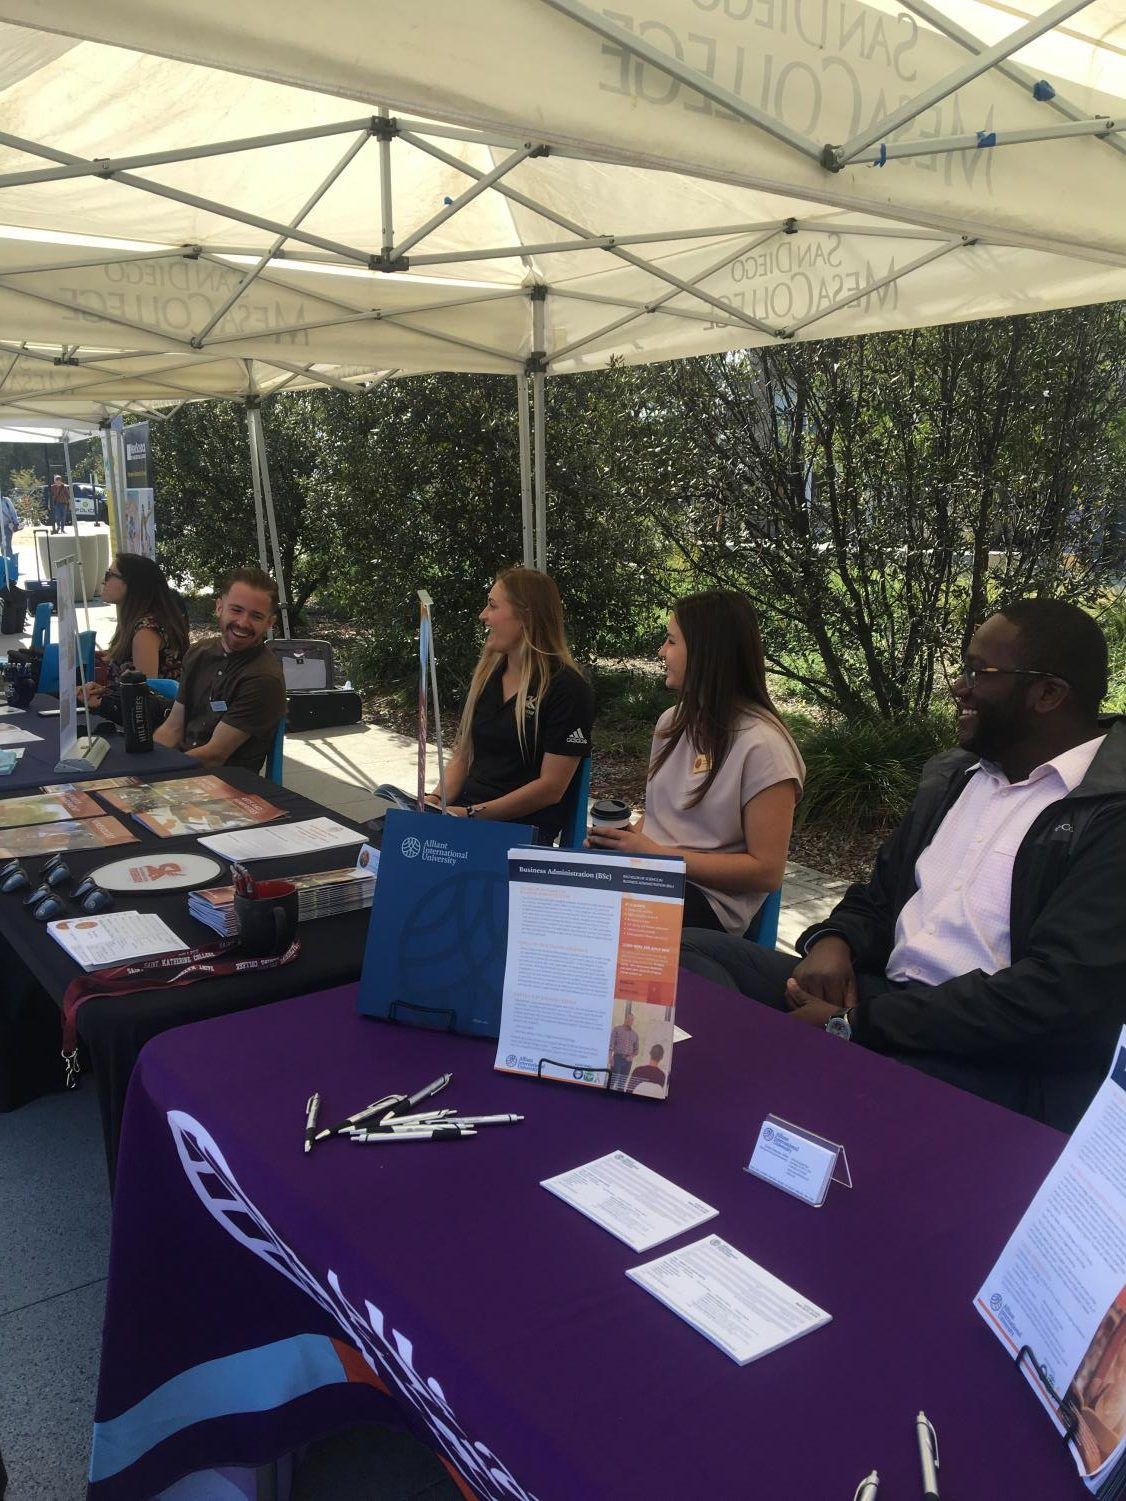 Representatives from San Diego Christian College, University of Saint Katherine, and Alliant International University ready to give students information